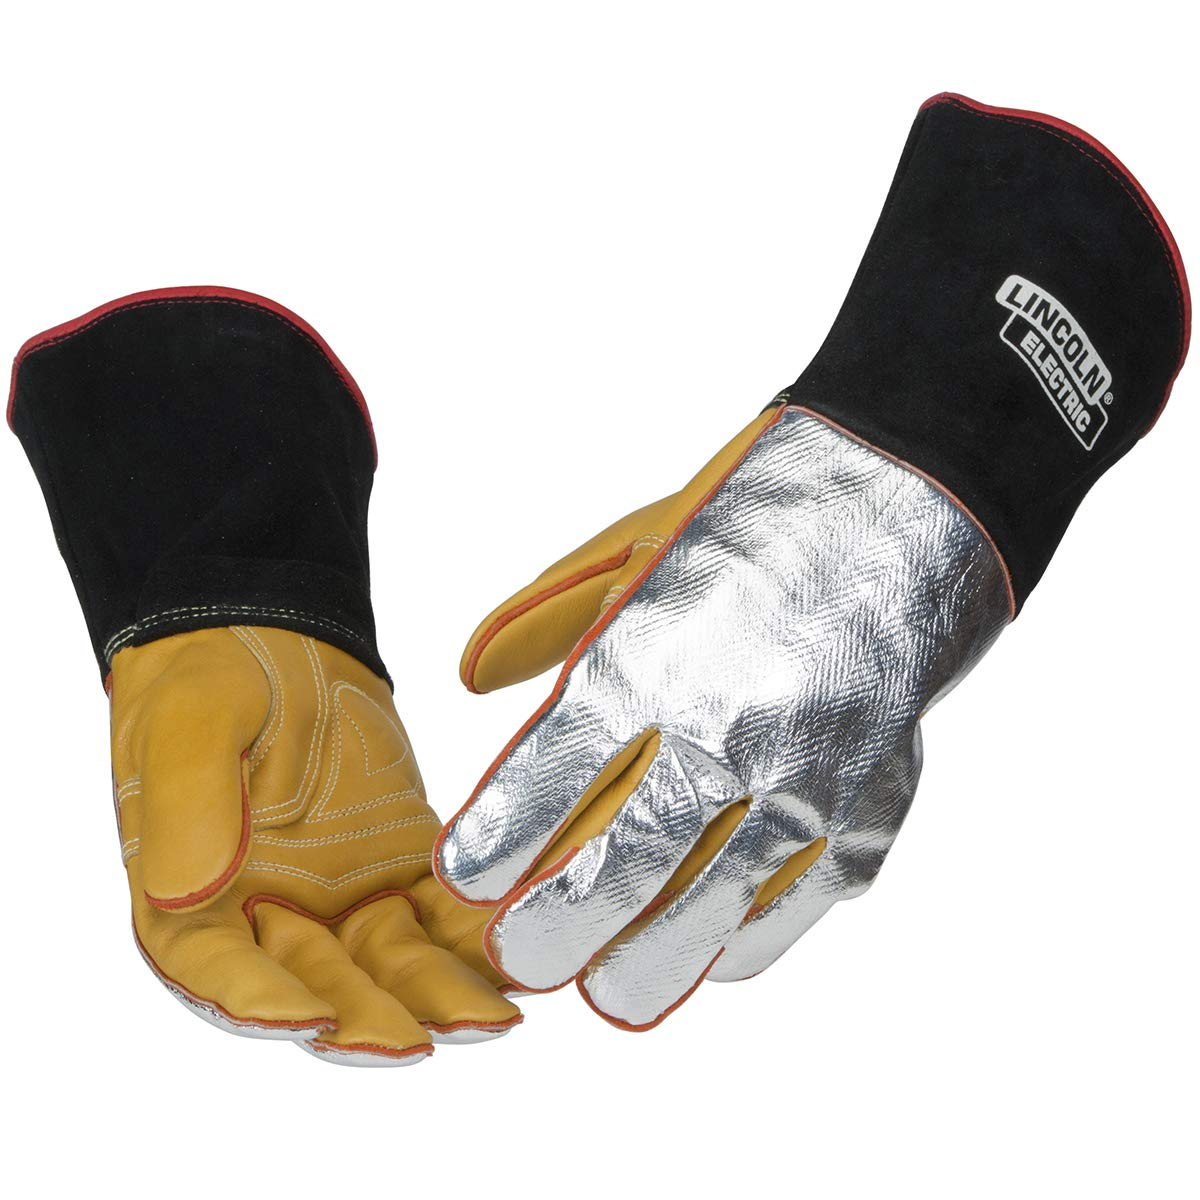 Lincoln Electric Heat Resistant Welding Gloves |Aluminized Reflective Hand | Large | K2982-L